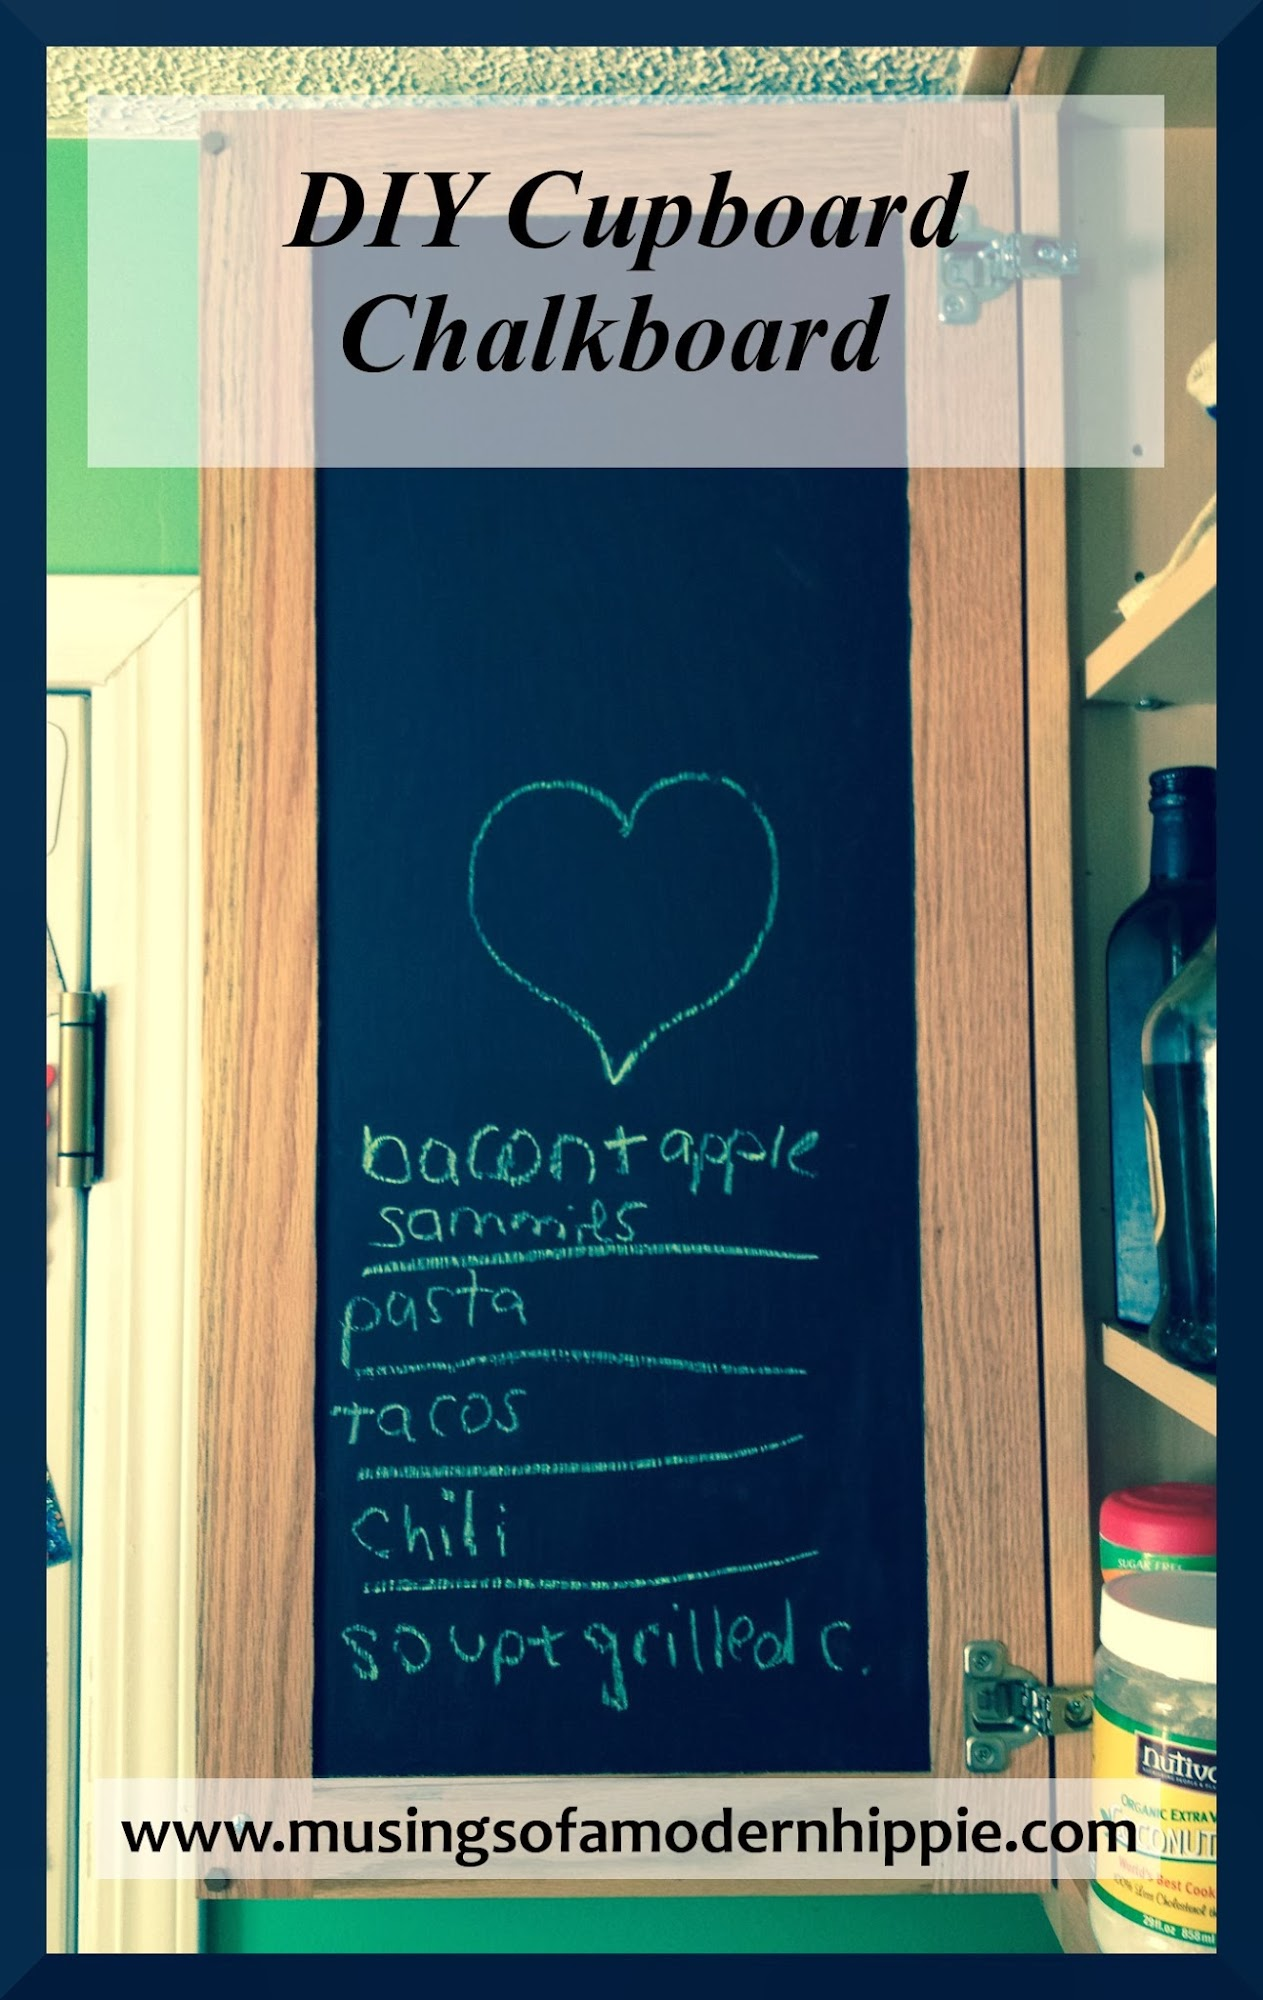 DIY Cupboard Chalkboard | Musings of a Modern Hippie